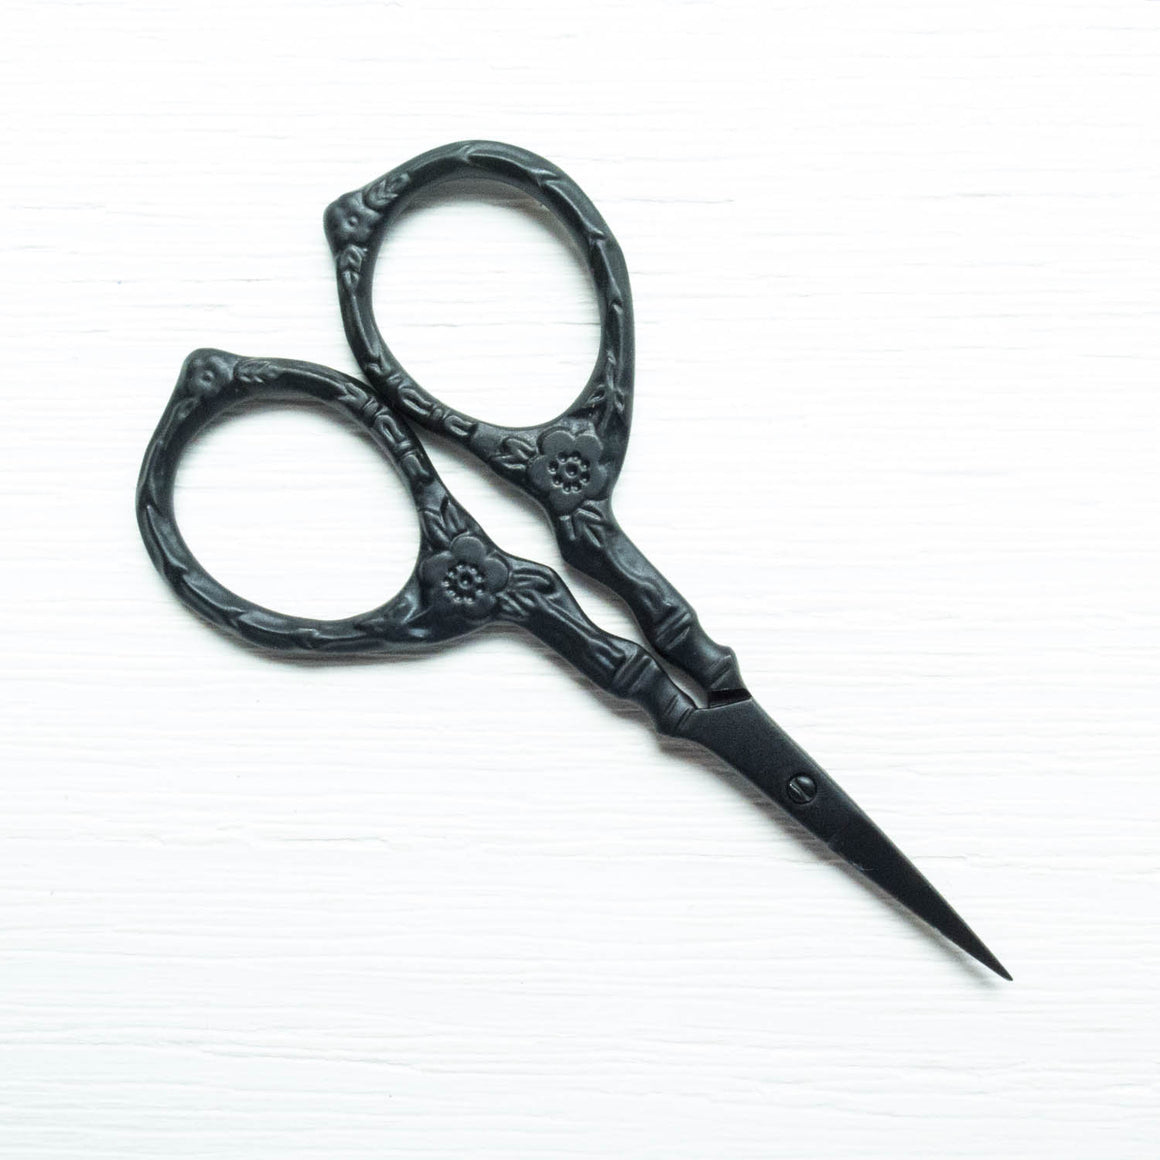 Black Matte Tudor Rose Embroidery Scissors Scissors - Snuggly Monkey